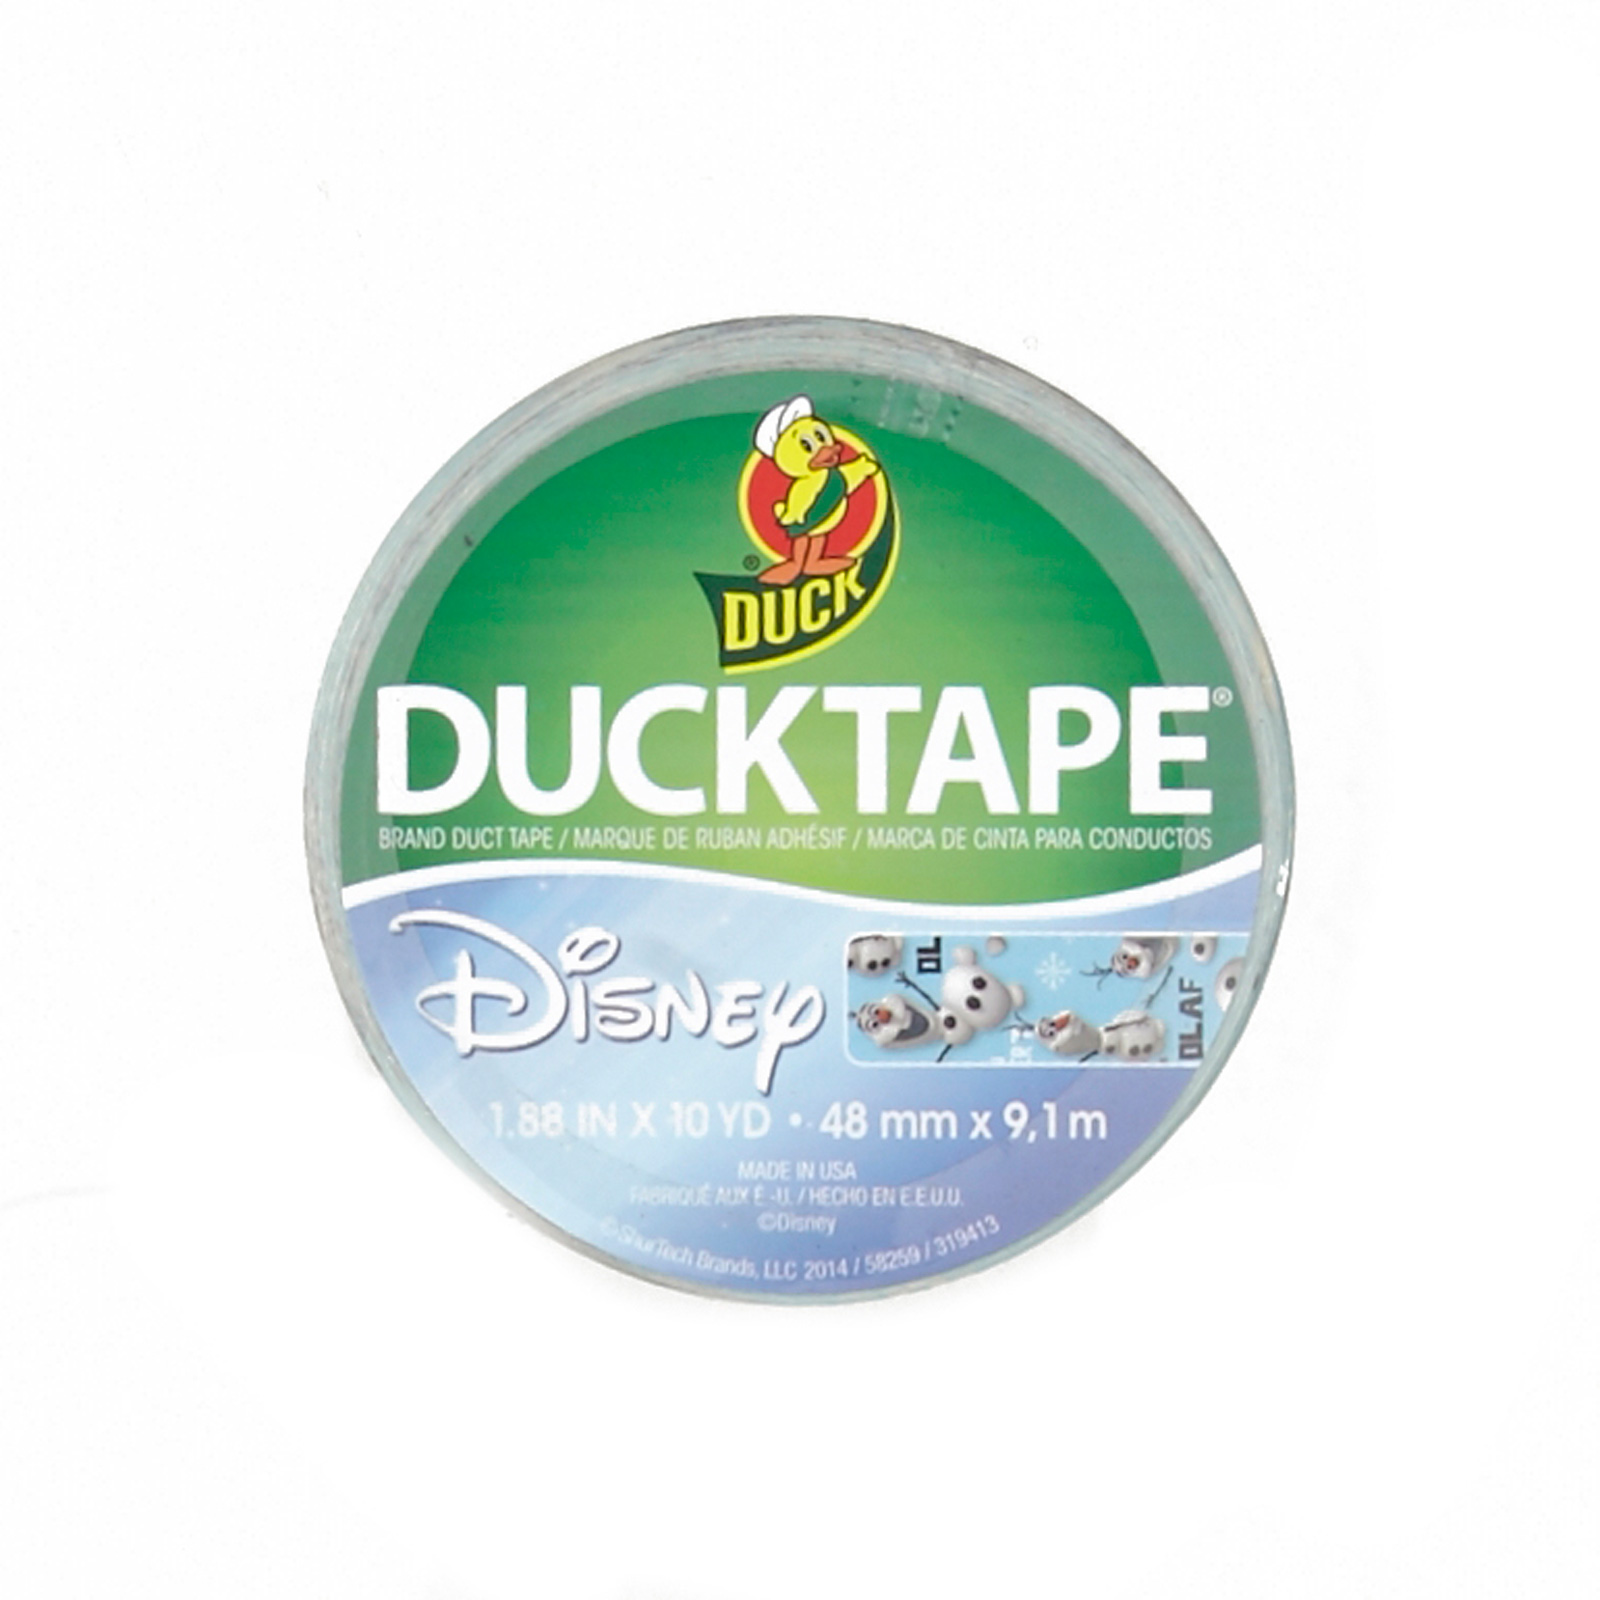 Frozen Olaf Duck Tape 10yd Roll by Notions Marketing in USA